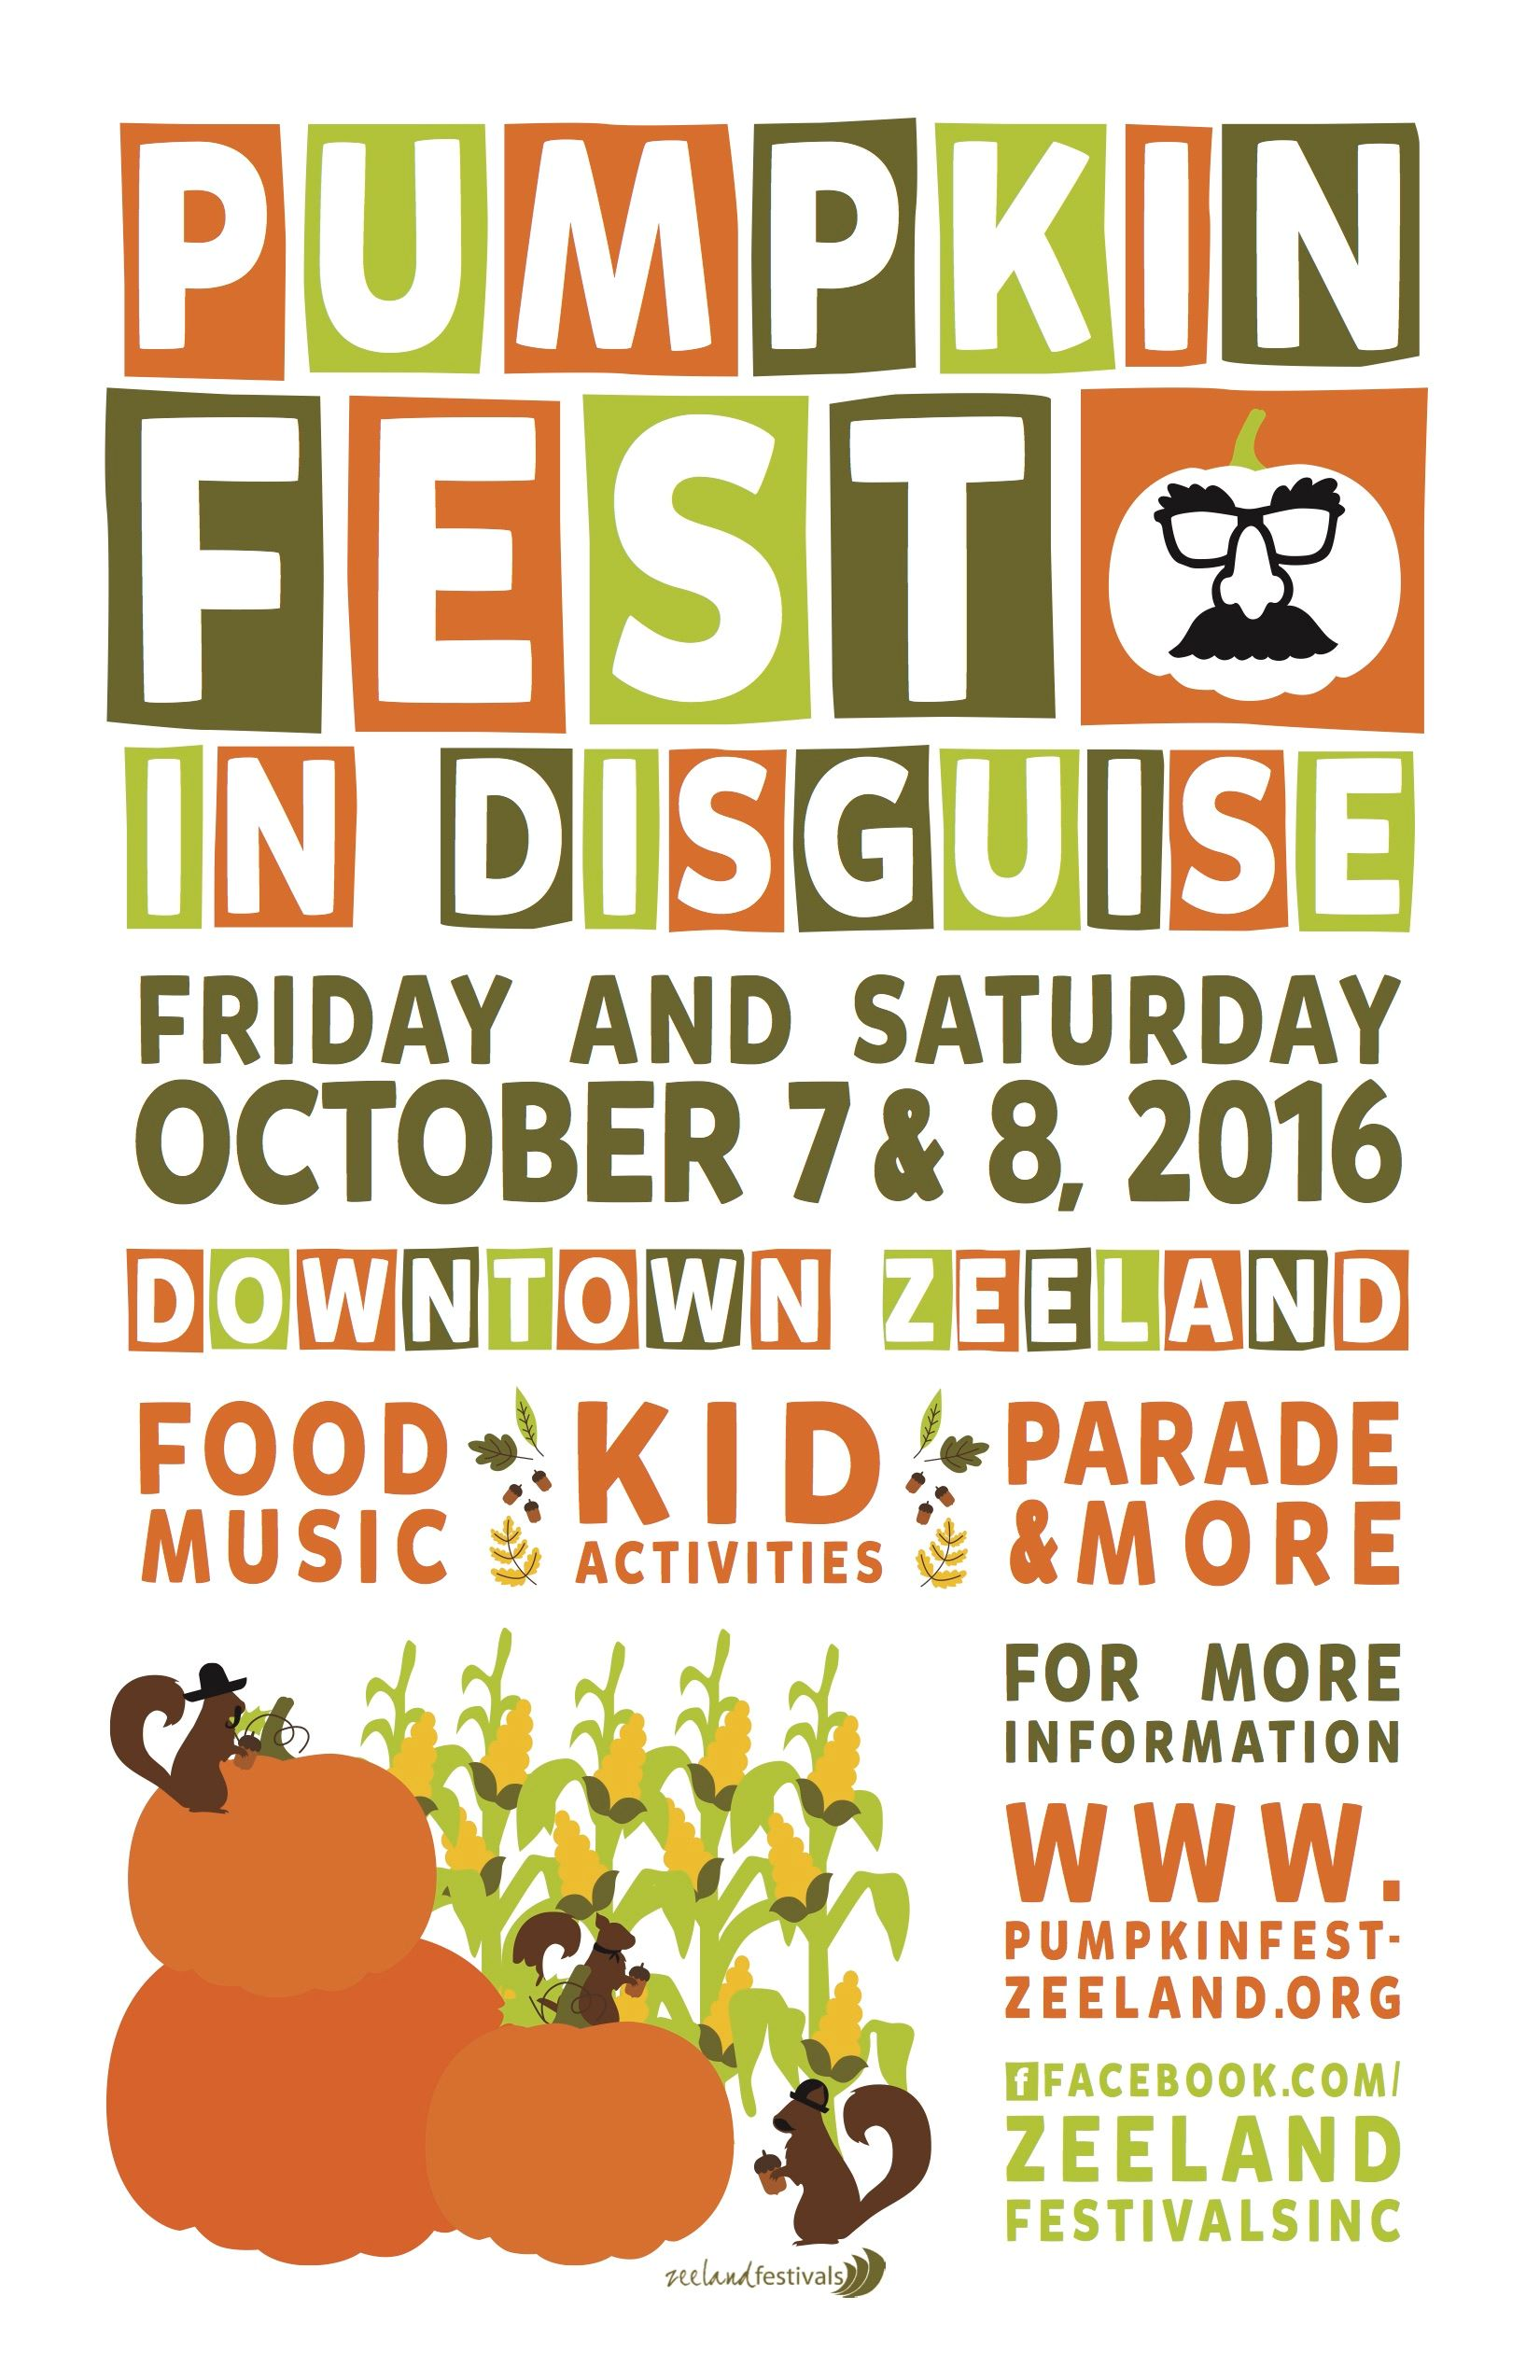 Pumpkinfest in Disguise Poster